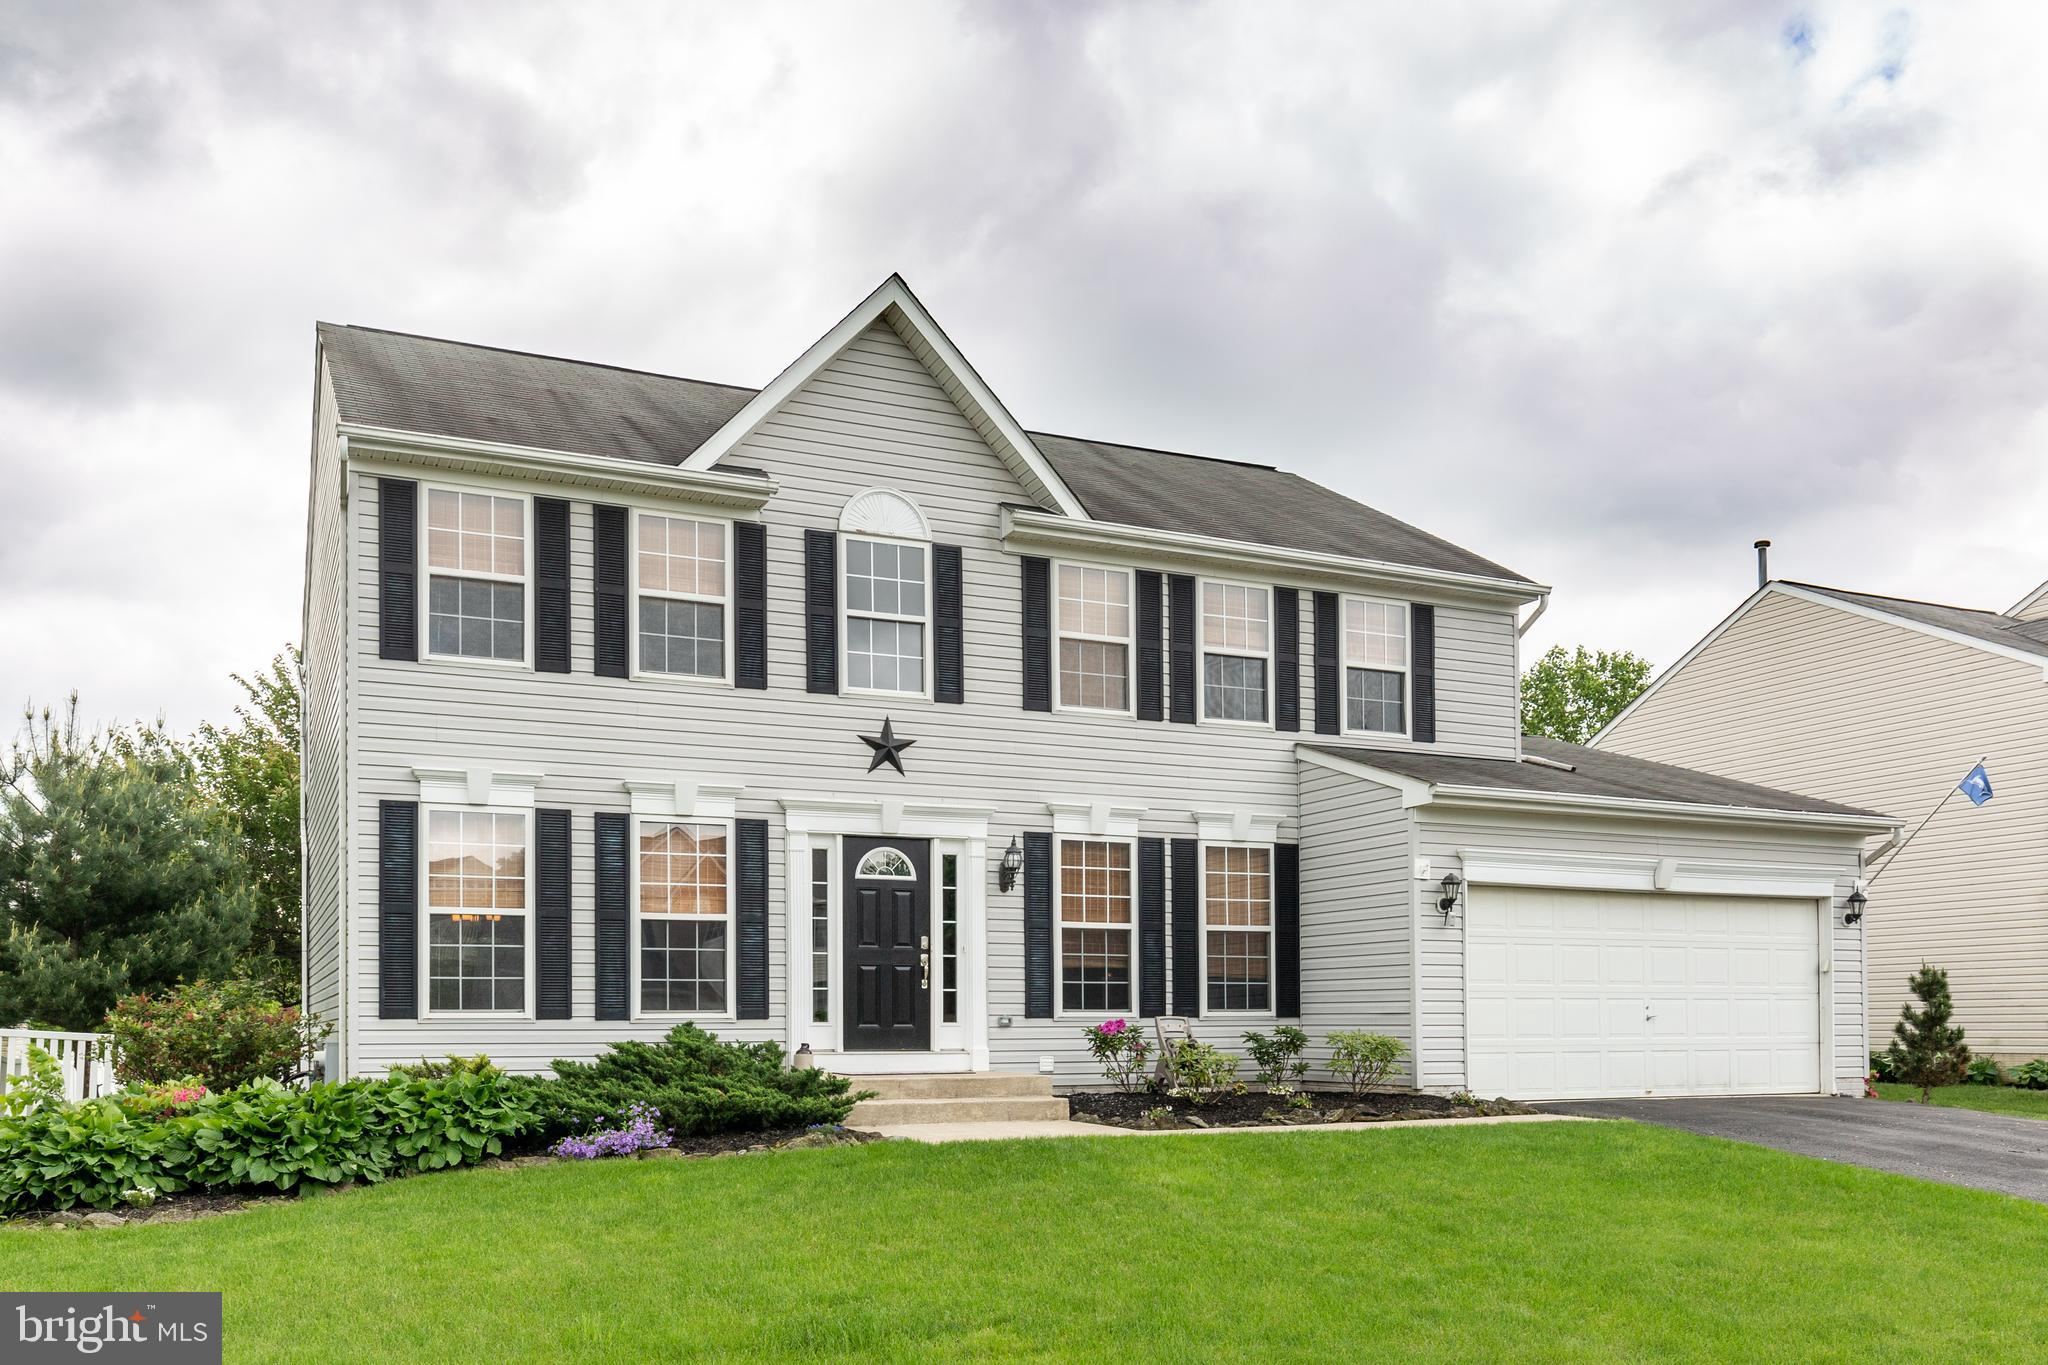 886 EDEN FARM CIRCLE, WESTMINSTER, MD 21157